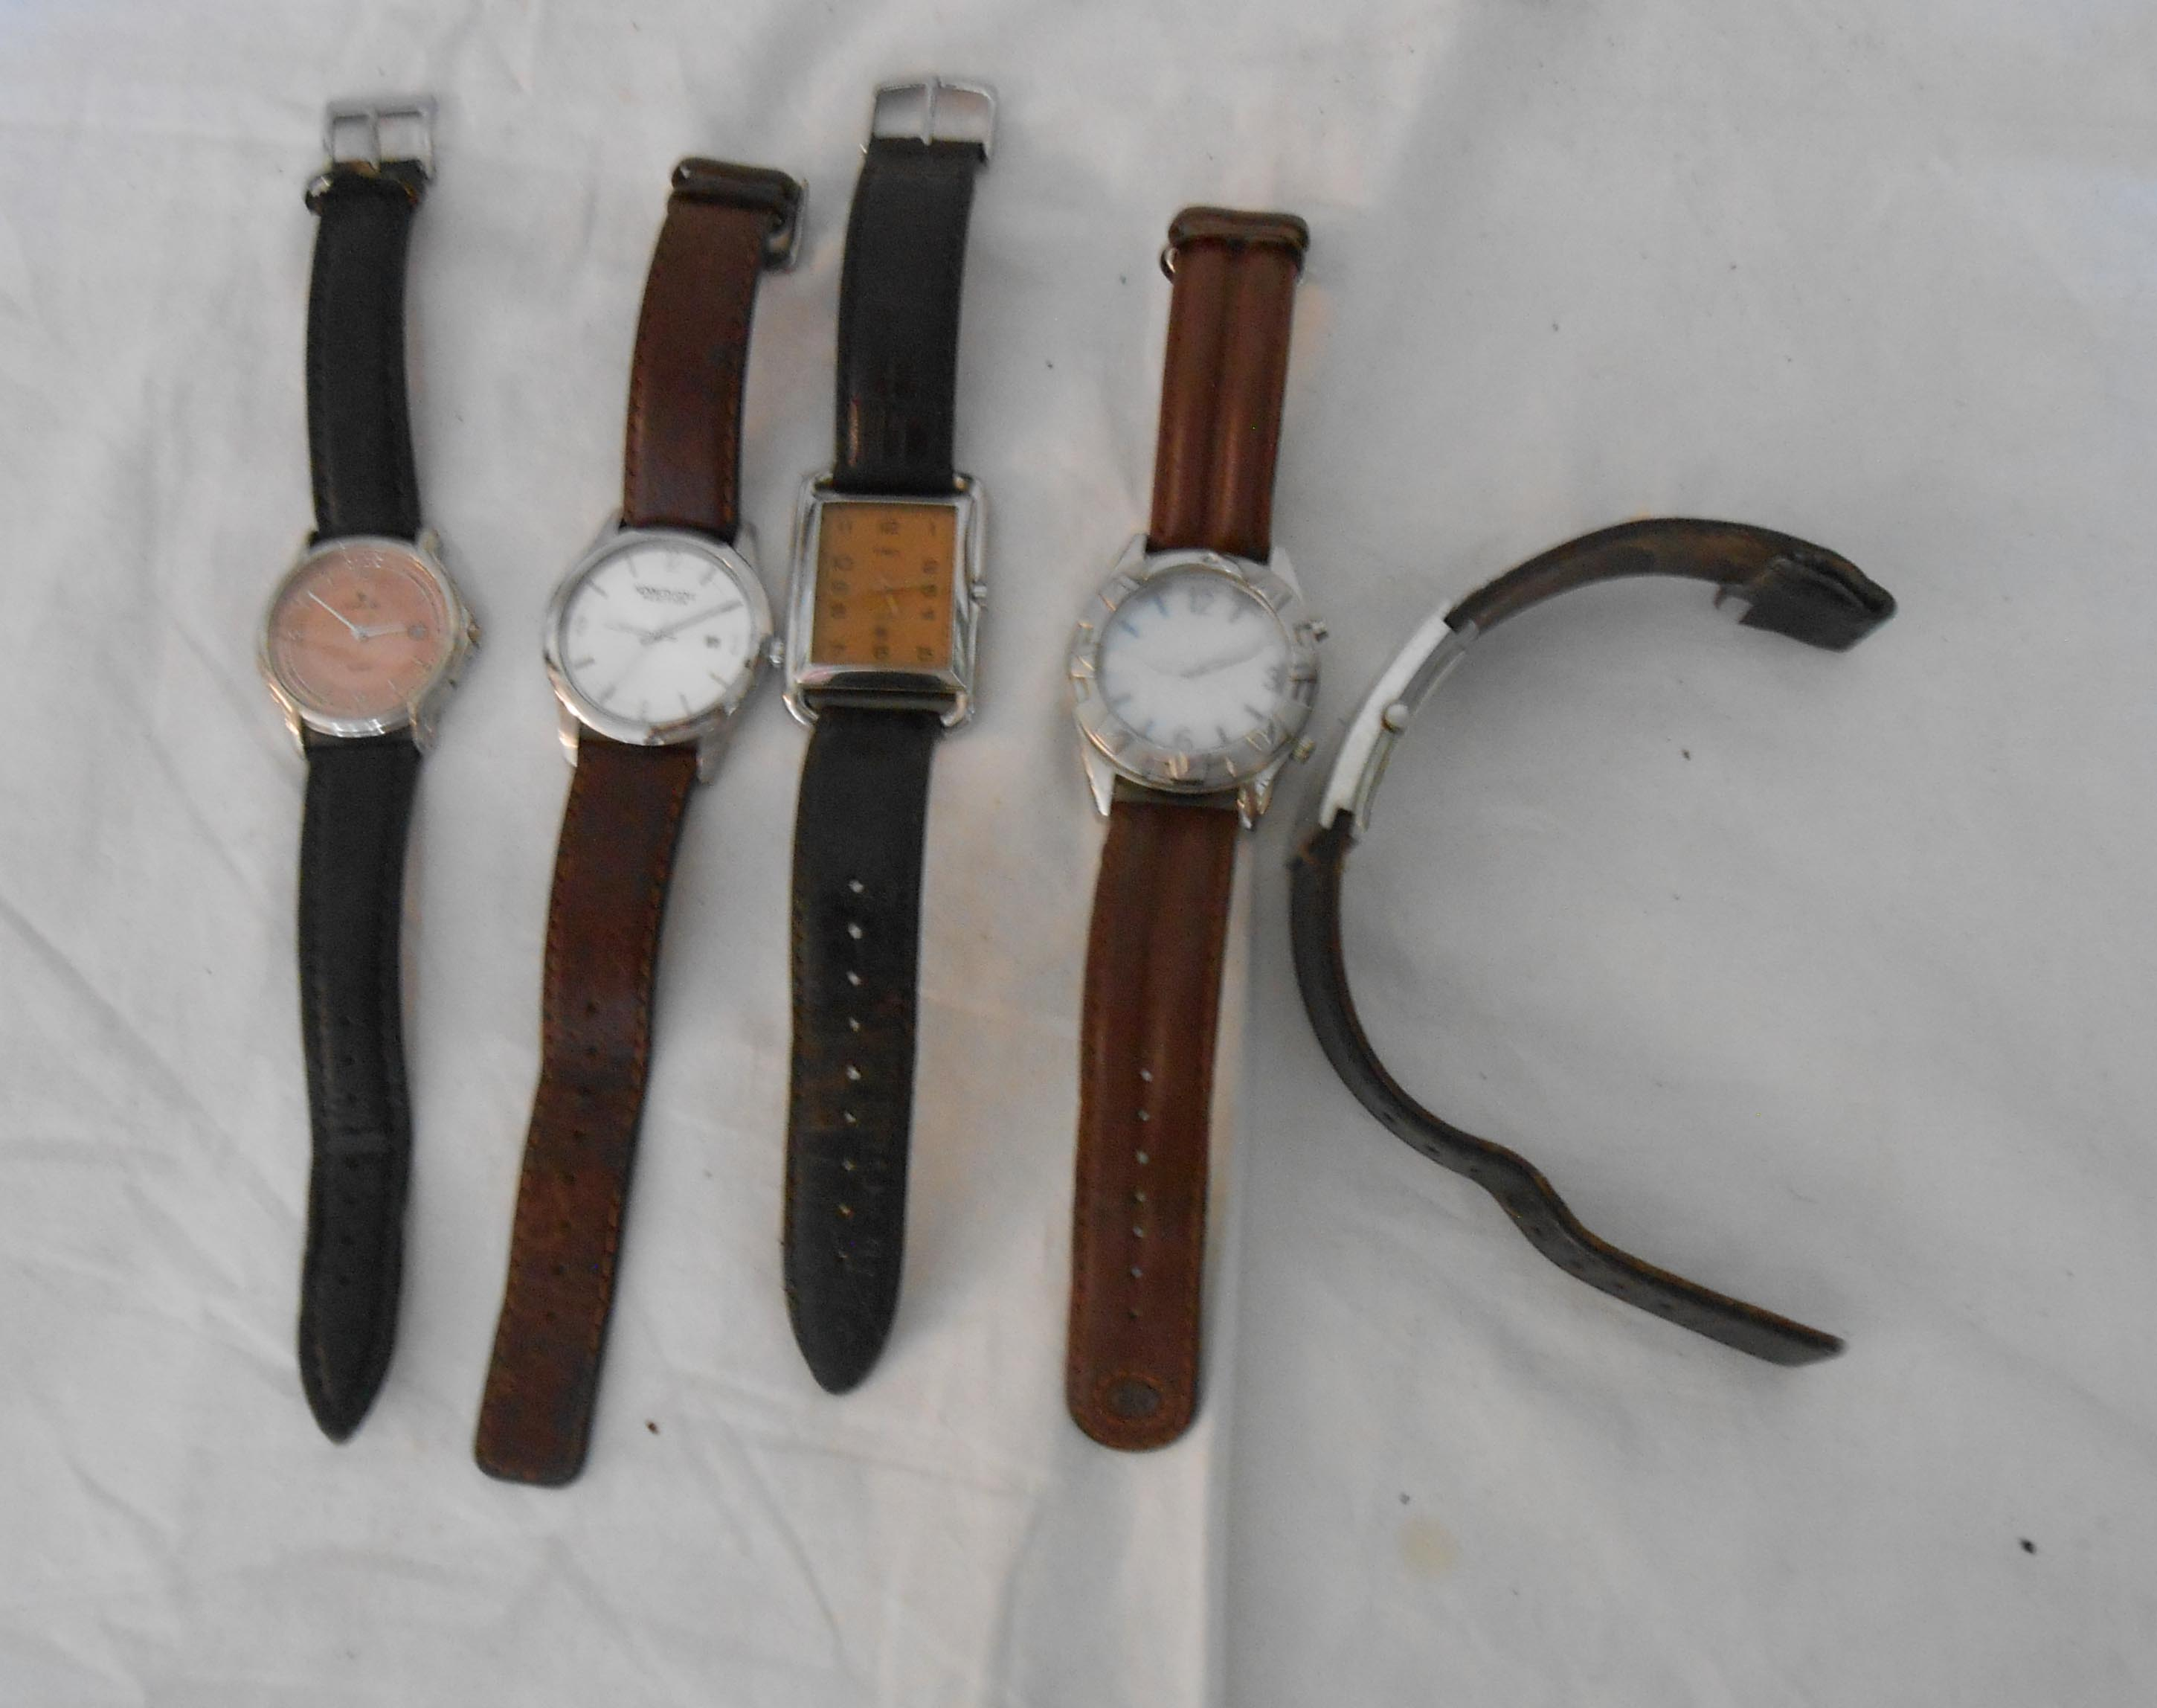 Five assorted gentlemen's large dial wristwatches - various styles and condition